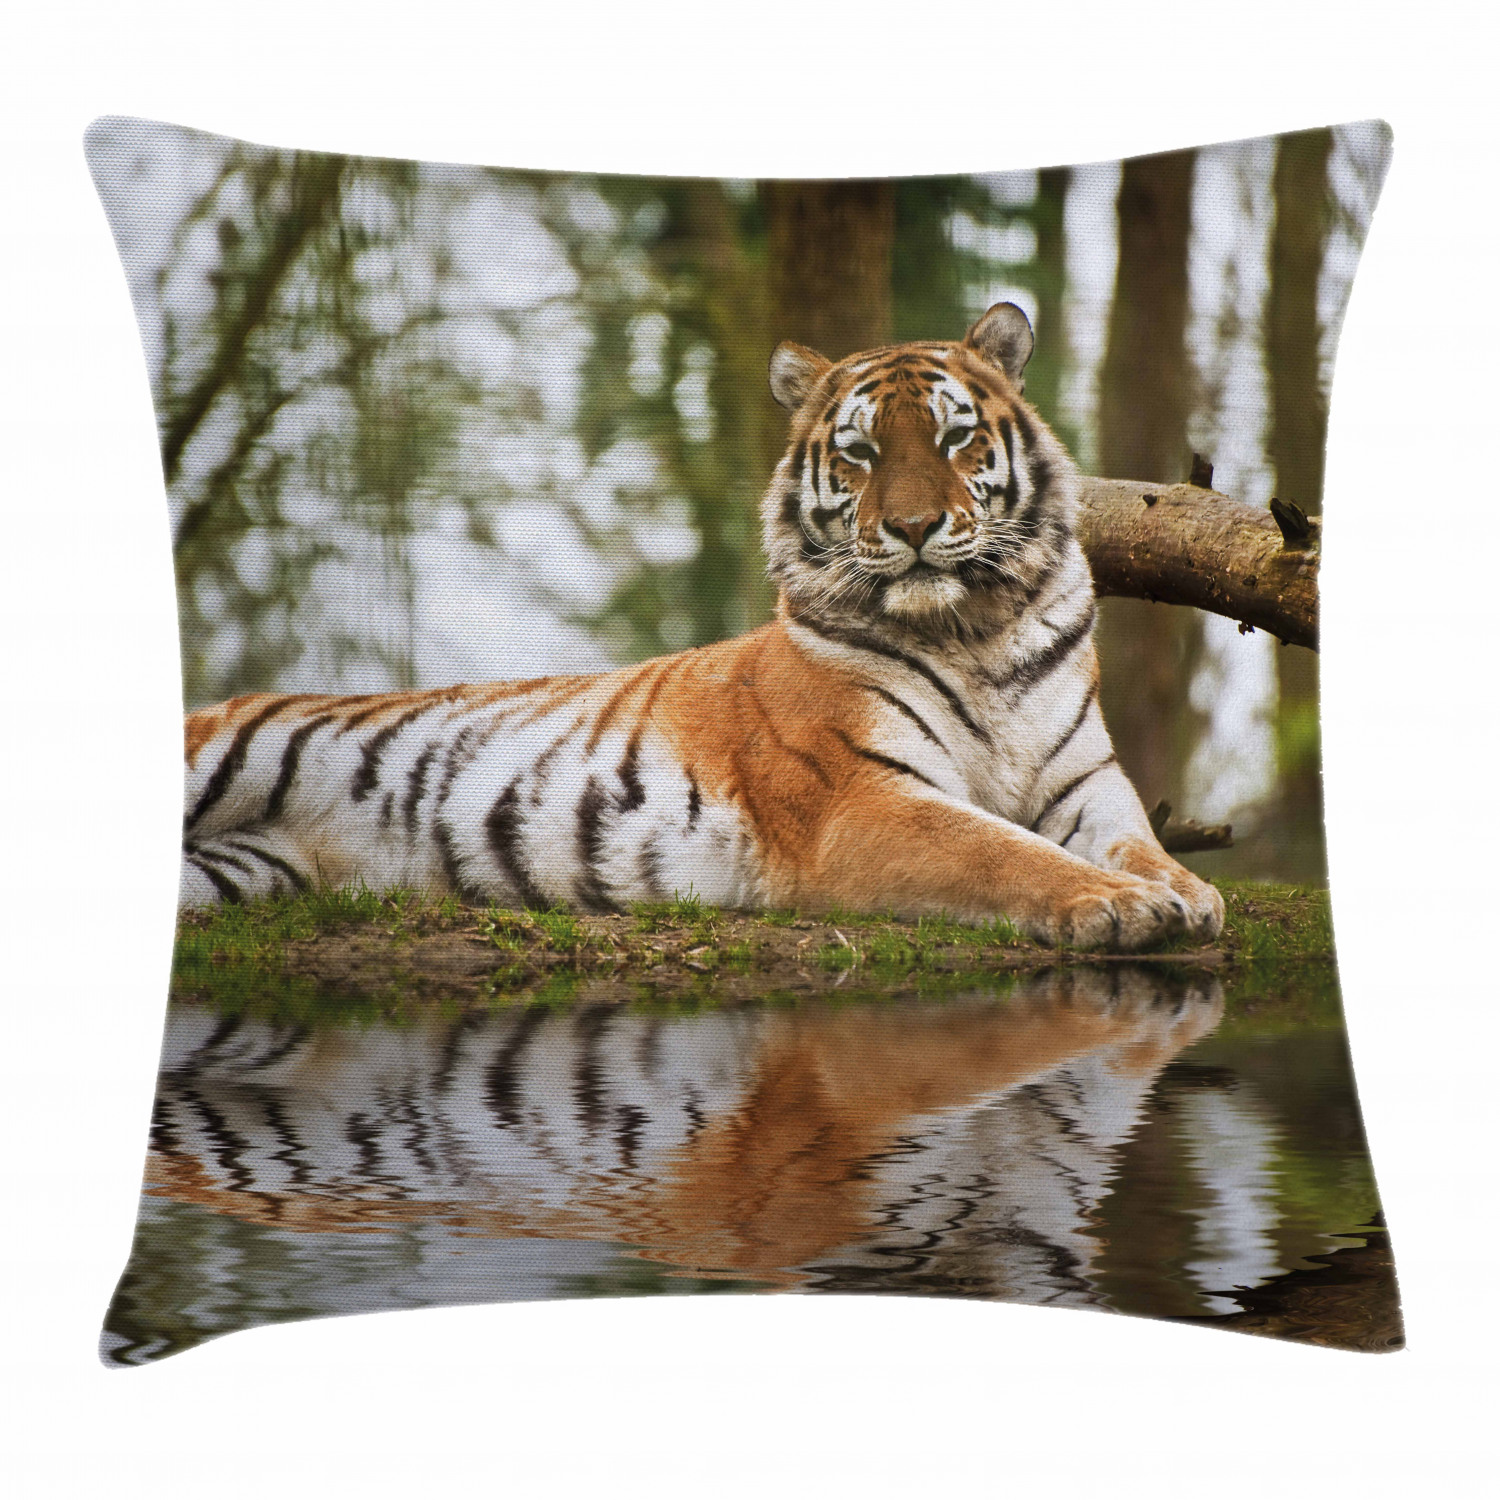 Tiger Throw Pillow Cushion Cover Beast Of Siberia Resting On A Warm Day On A Lake With Its Reflection Altaica Mammal Decorative Square Accent Pillow Case 24 X 24 Inches Pale Brown